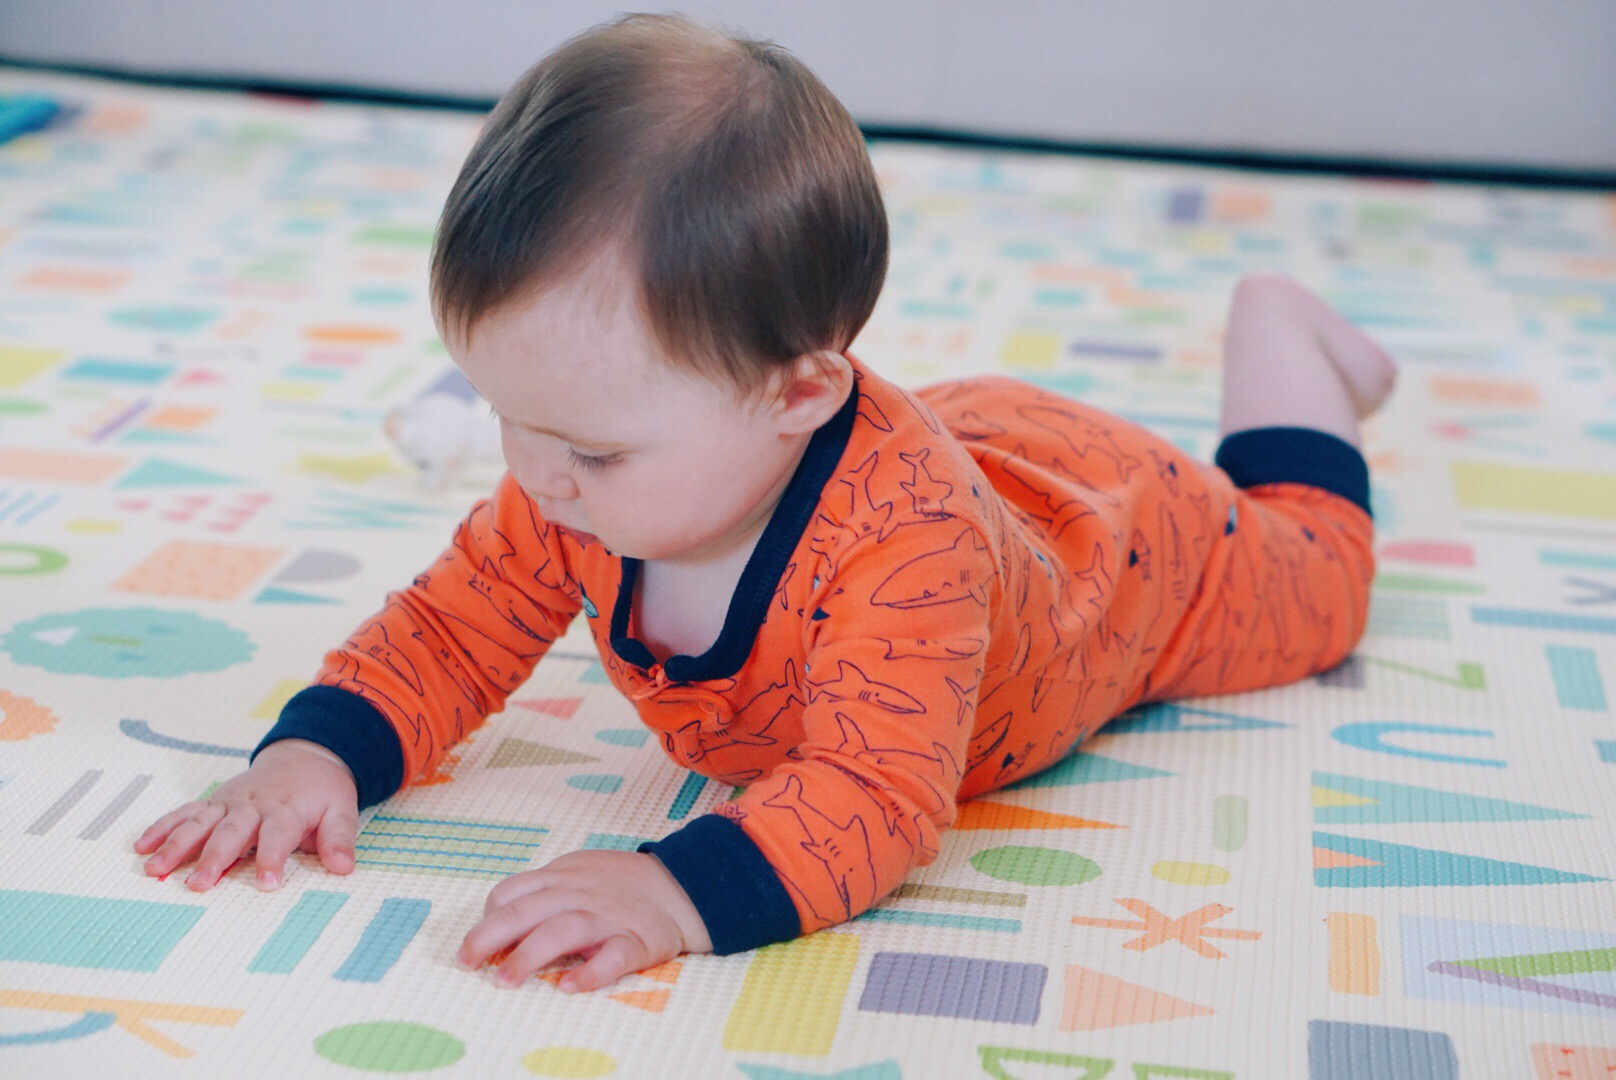 BabBaby Play Mat -Best Baby Floor Mat for Crawling and Toddler Playy Play Mat -Best Baby Floor Mat for Crawling and Toddler Play